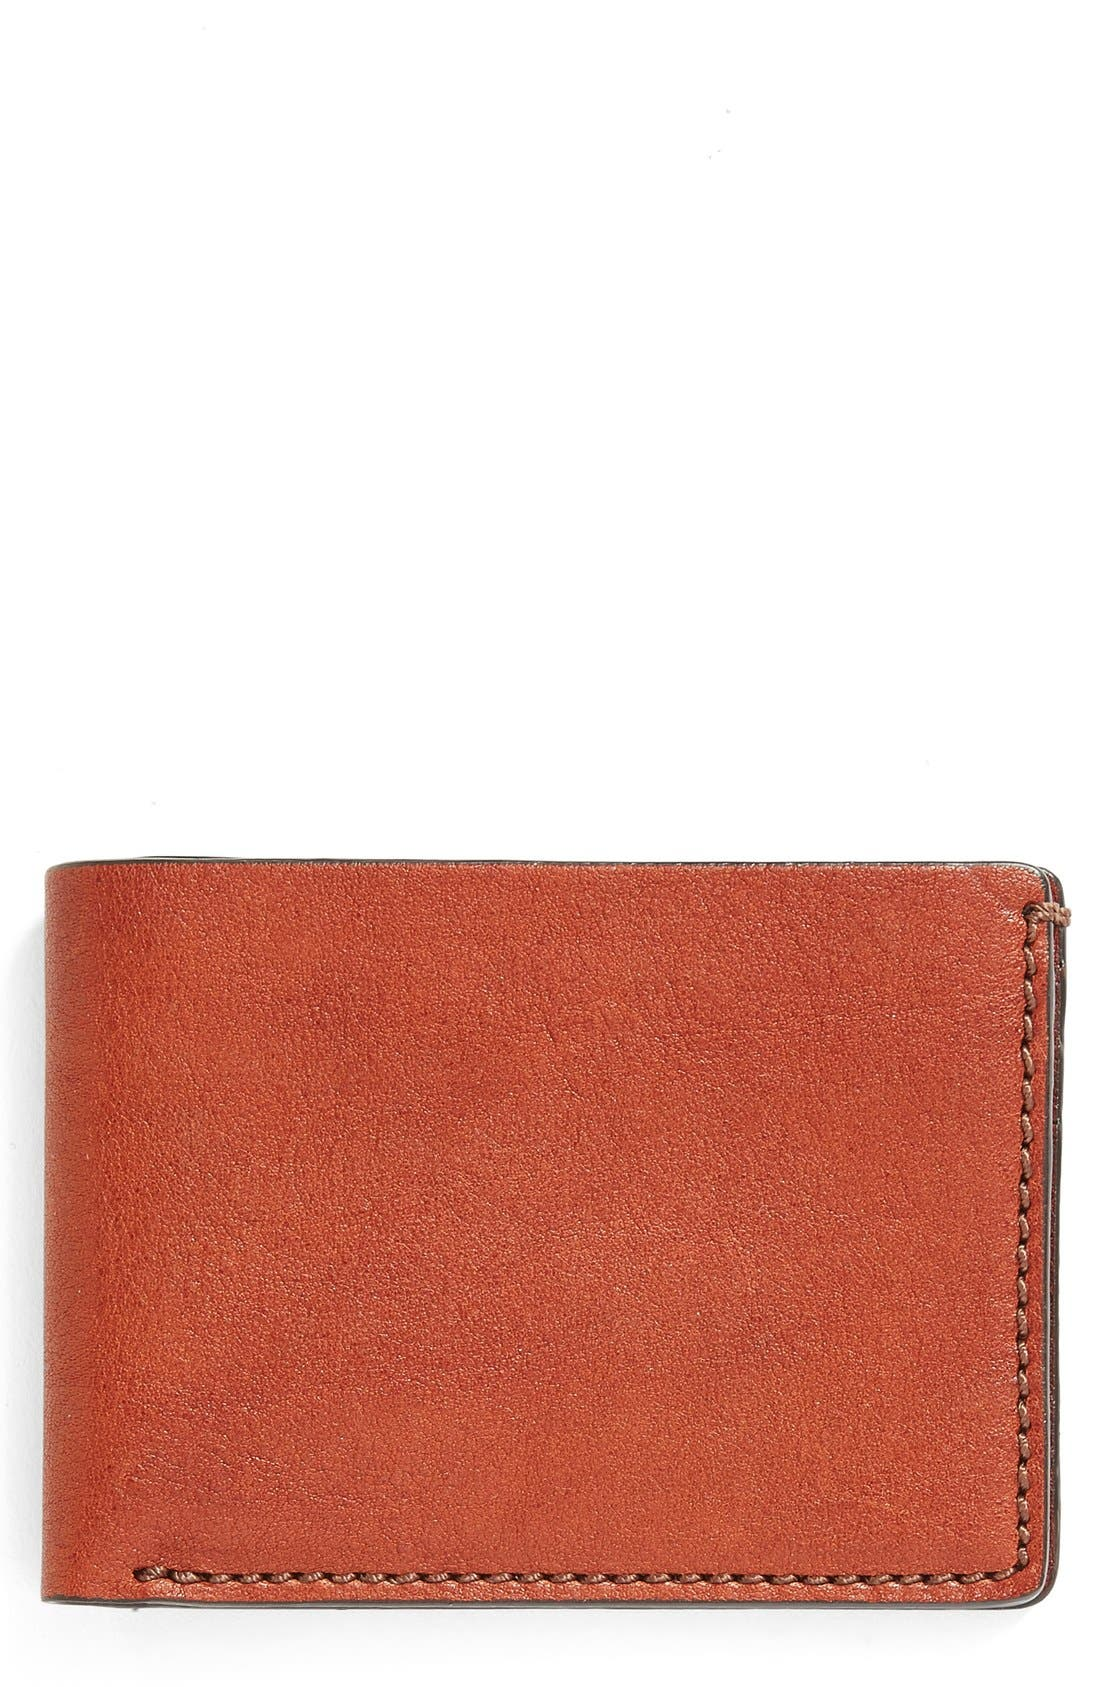 Leather Bifold Wallet,                             Main thumbnail 1, color,                             200